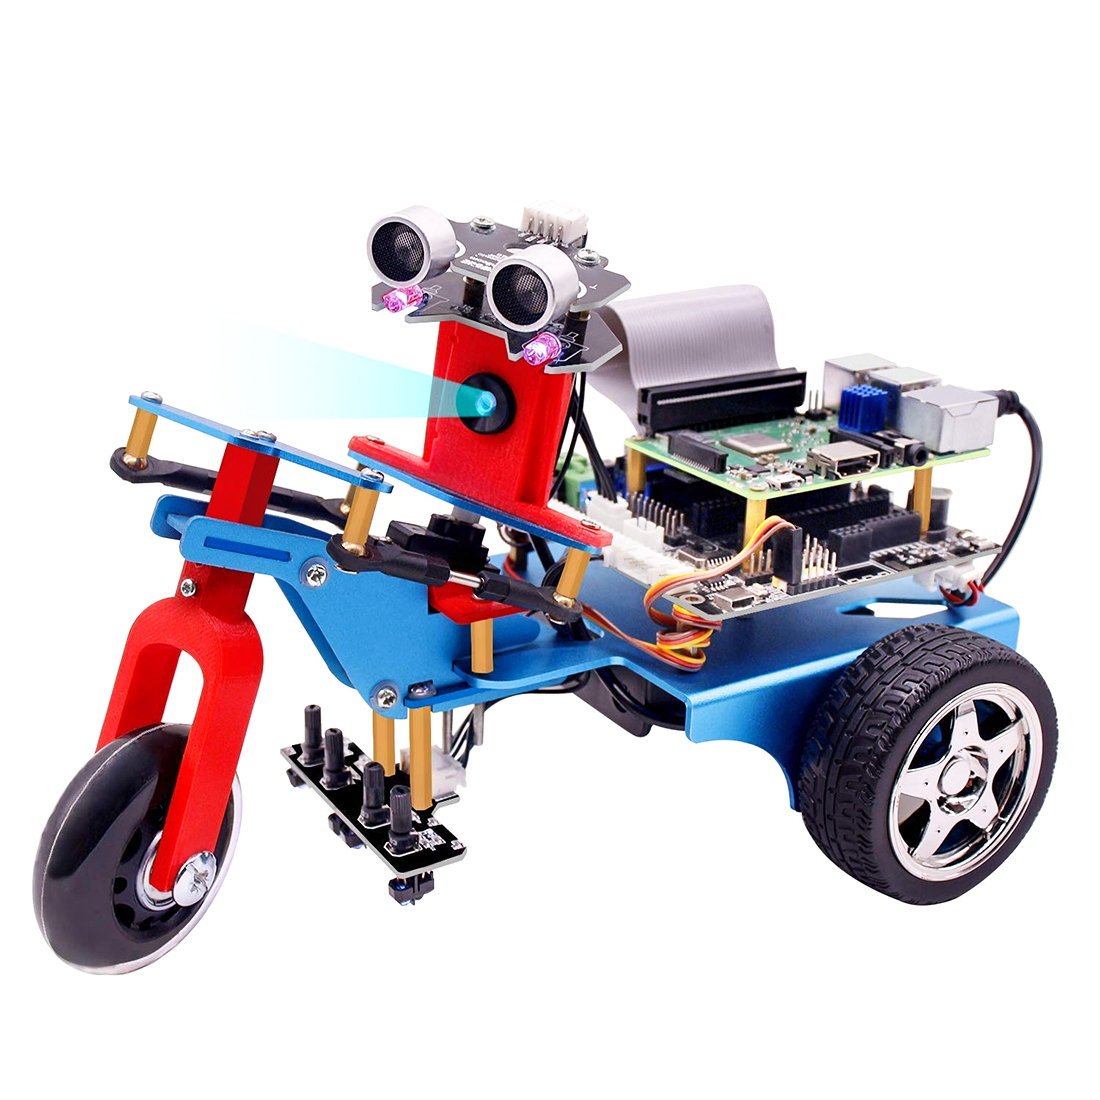 Three-Wheeled Car Smart Robot Kit Programmable Learning Toy With HD Camera DIY Robot Kit With 4G 2G 1G Raspberry 4B For Children